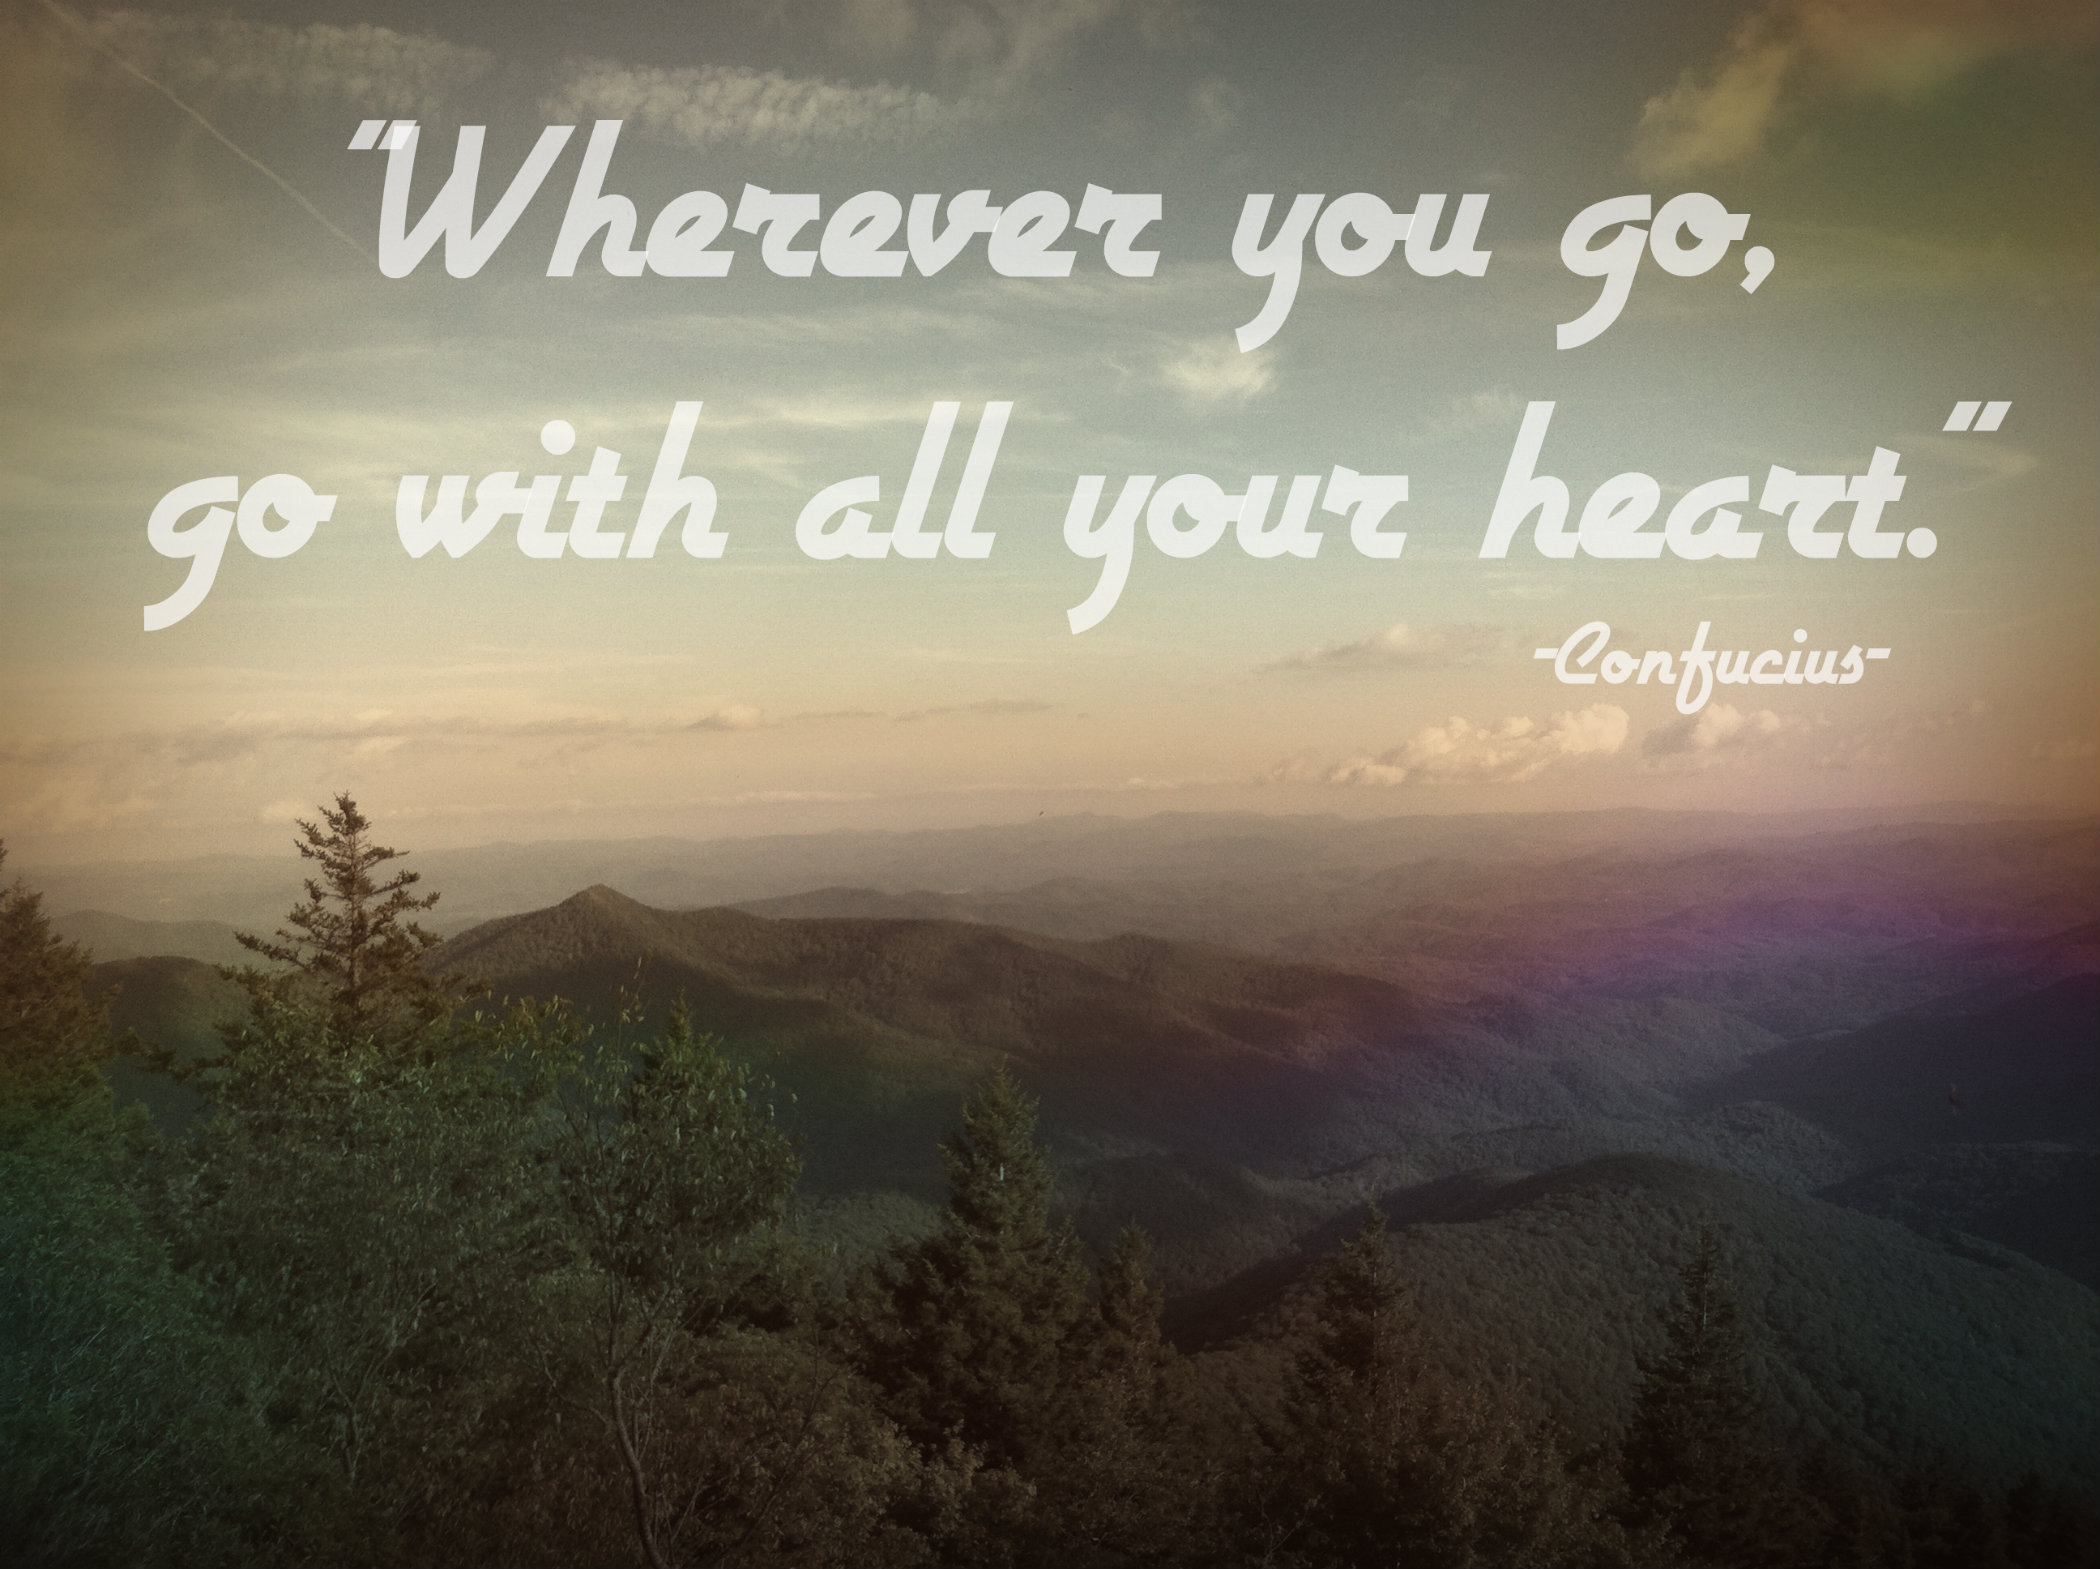 Wanderlust Quotes ⋙ - For the Love of Wanderlust